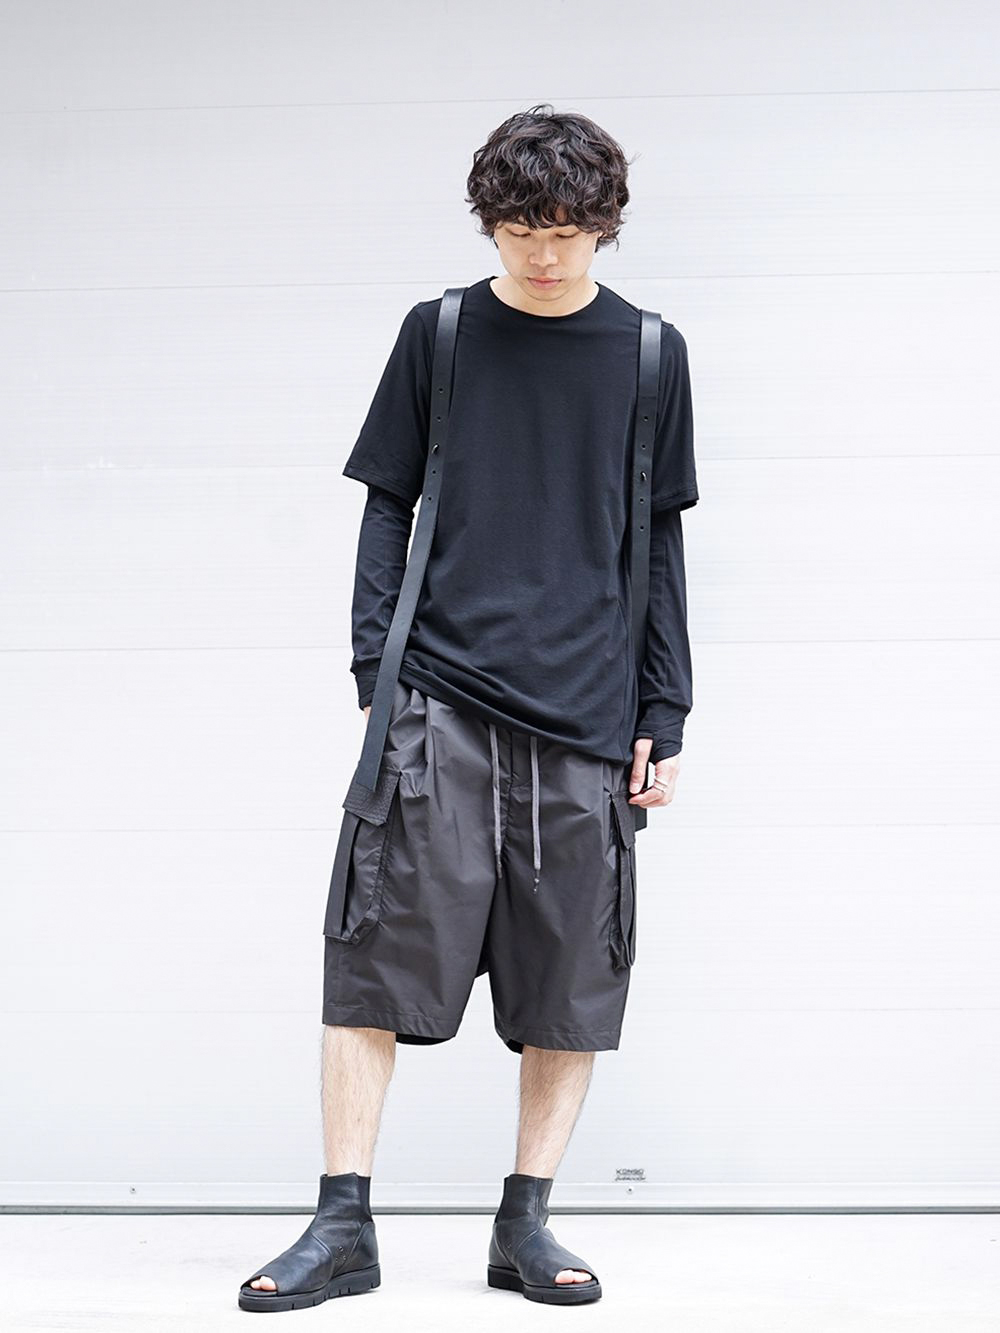 DEVOA 19SS Cutsew & Short Pants Recommended Style - 1-001